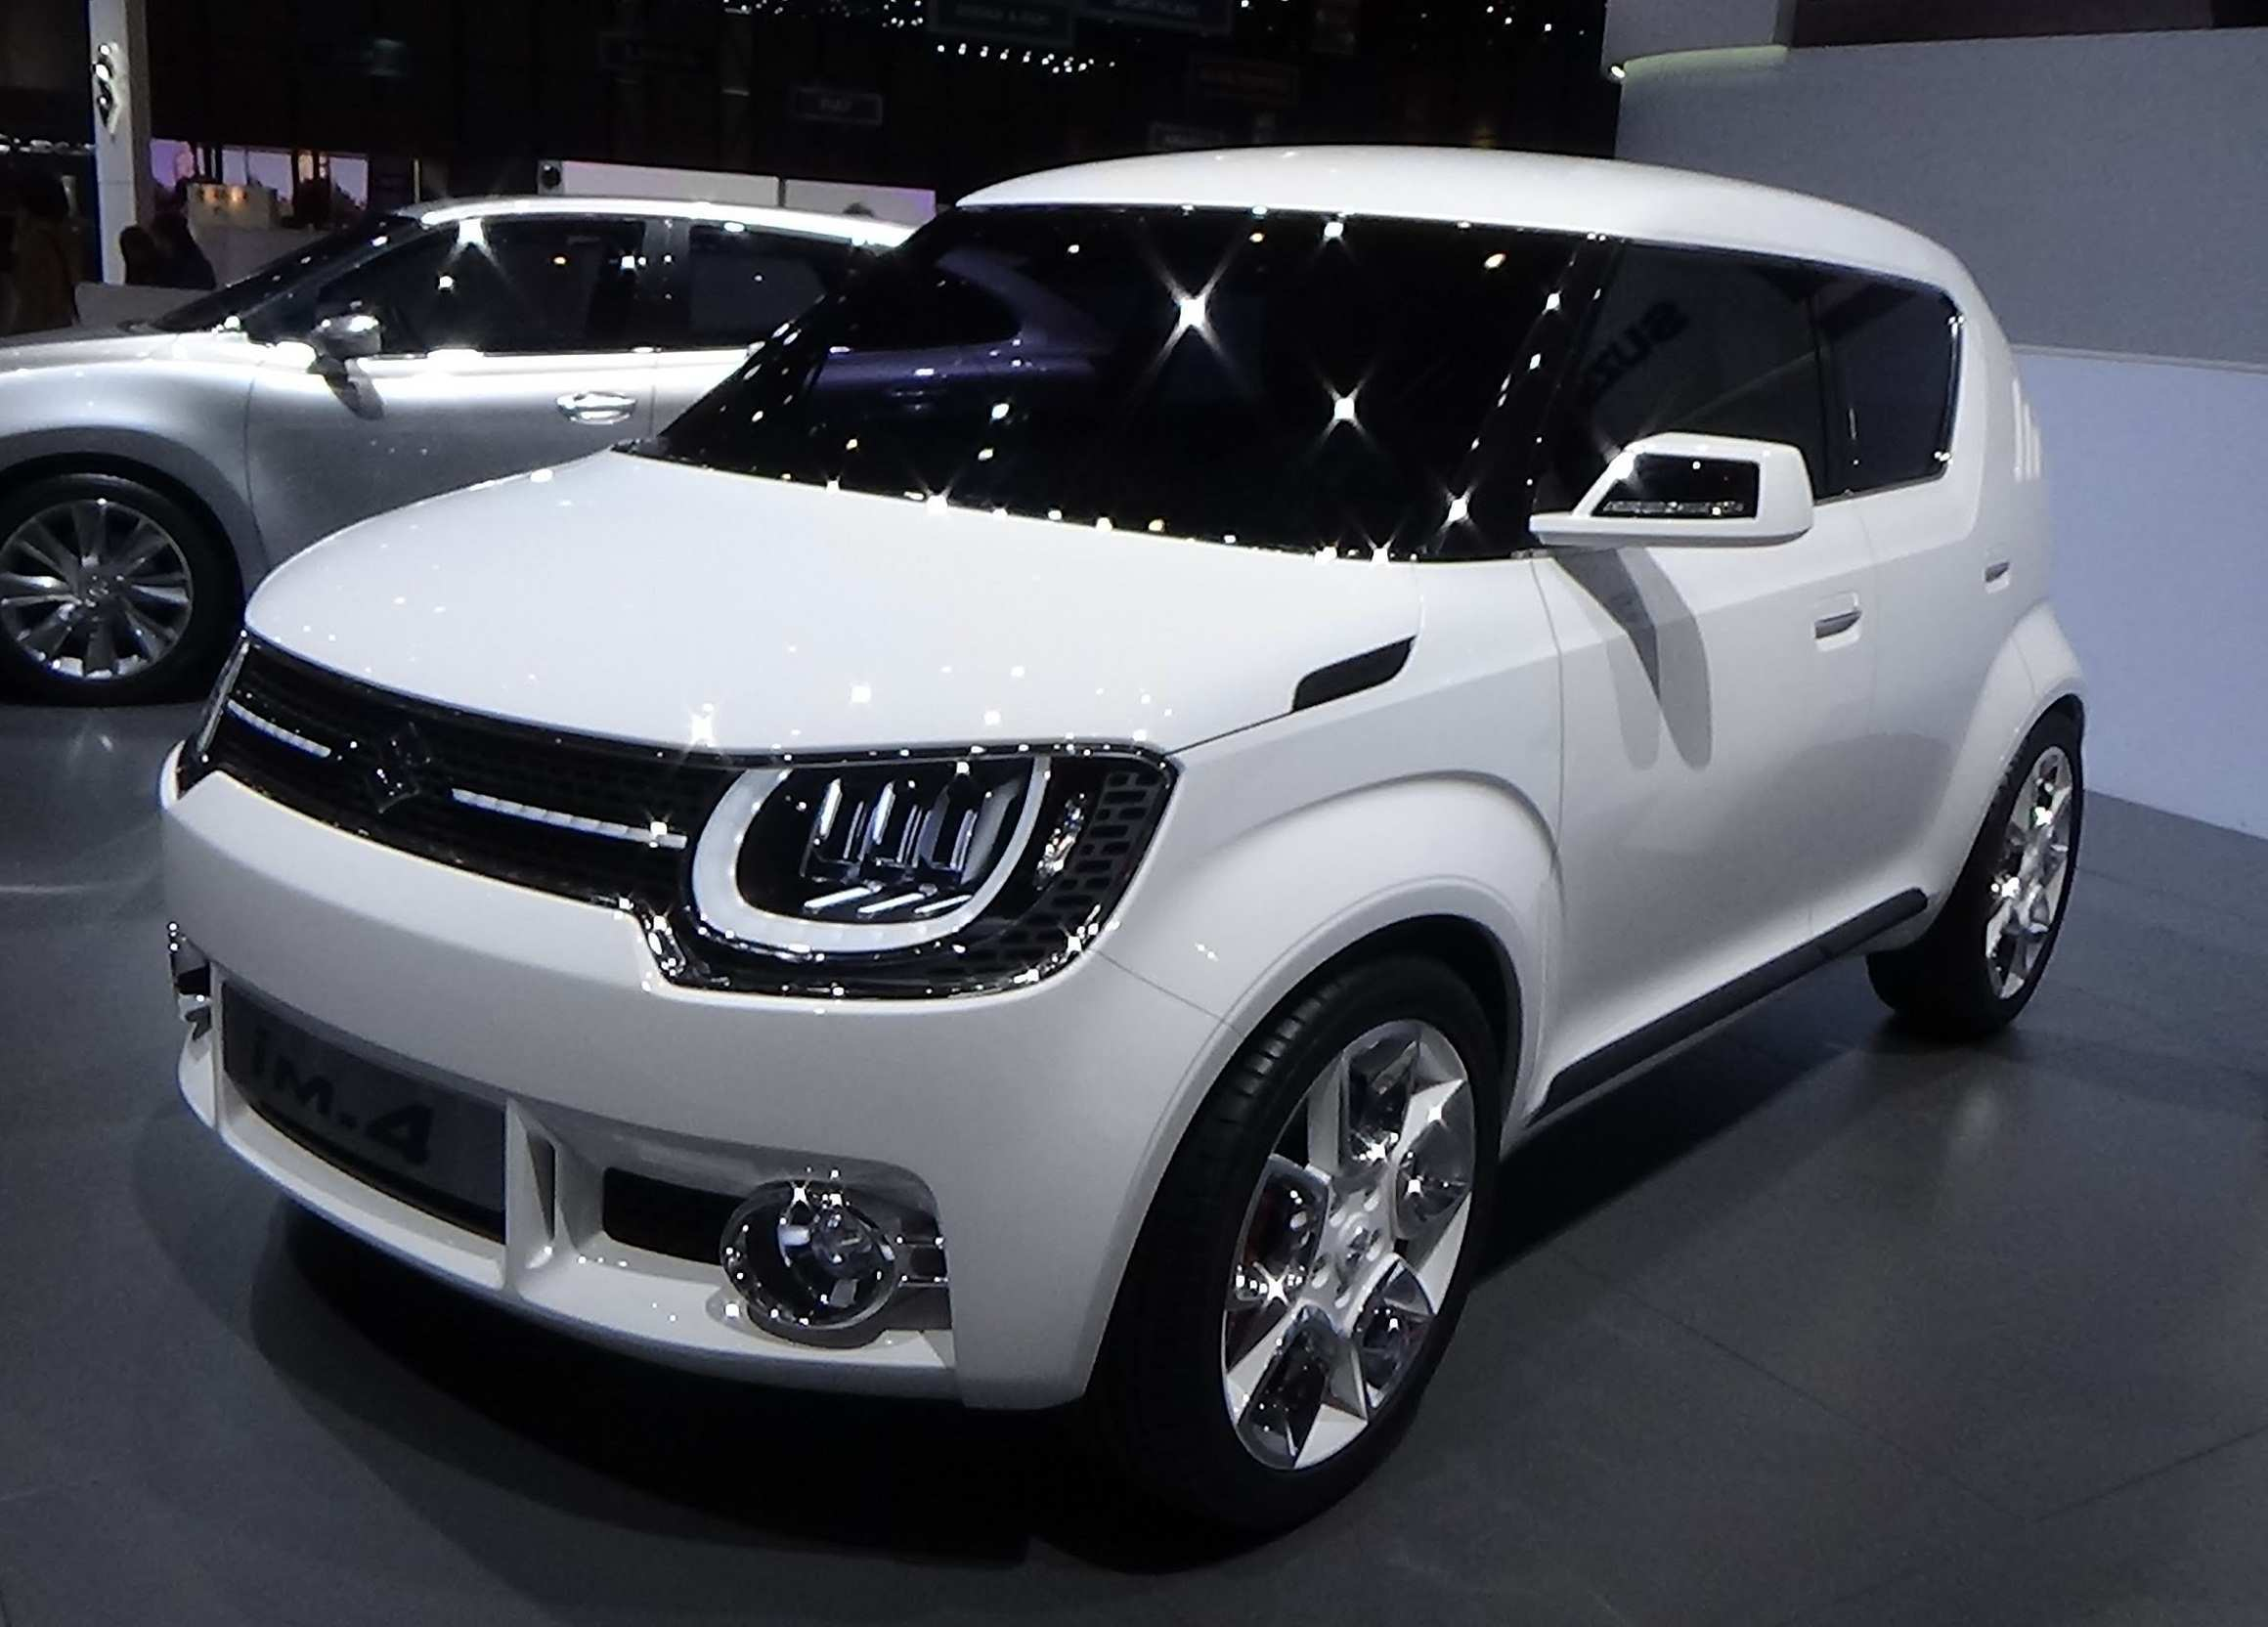 21 Concept of Suzuki Cars 2020 Photos with Suzuki Cars 2020